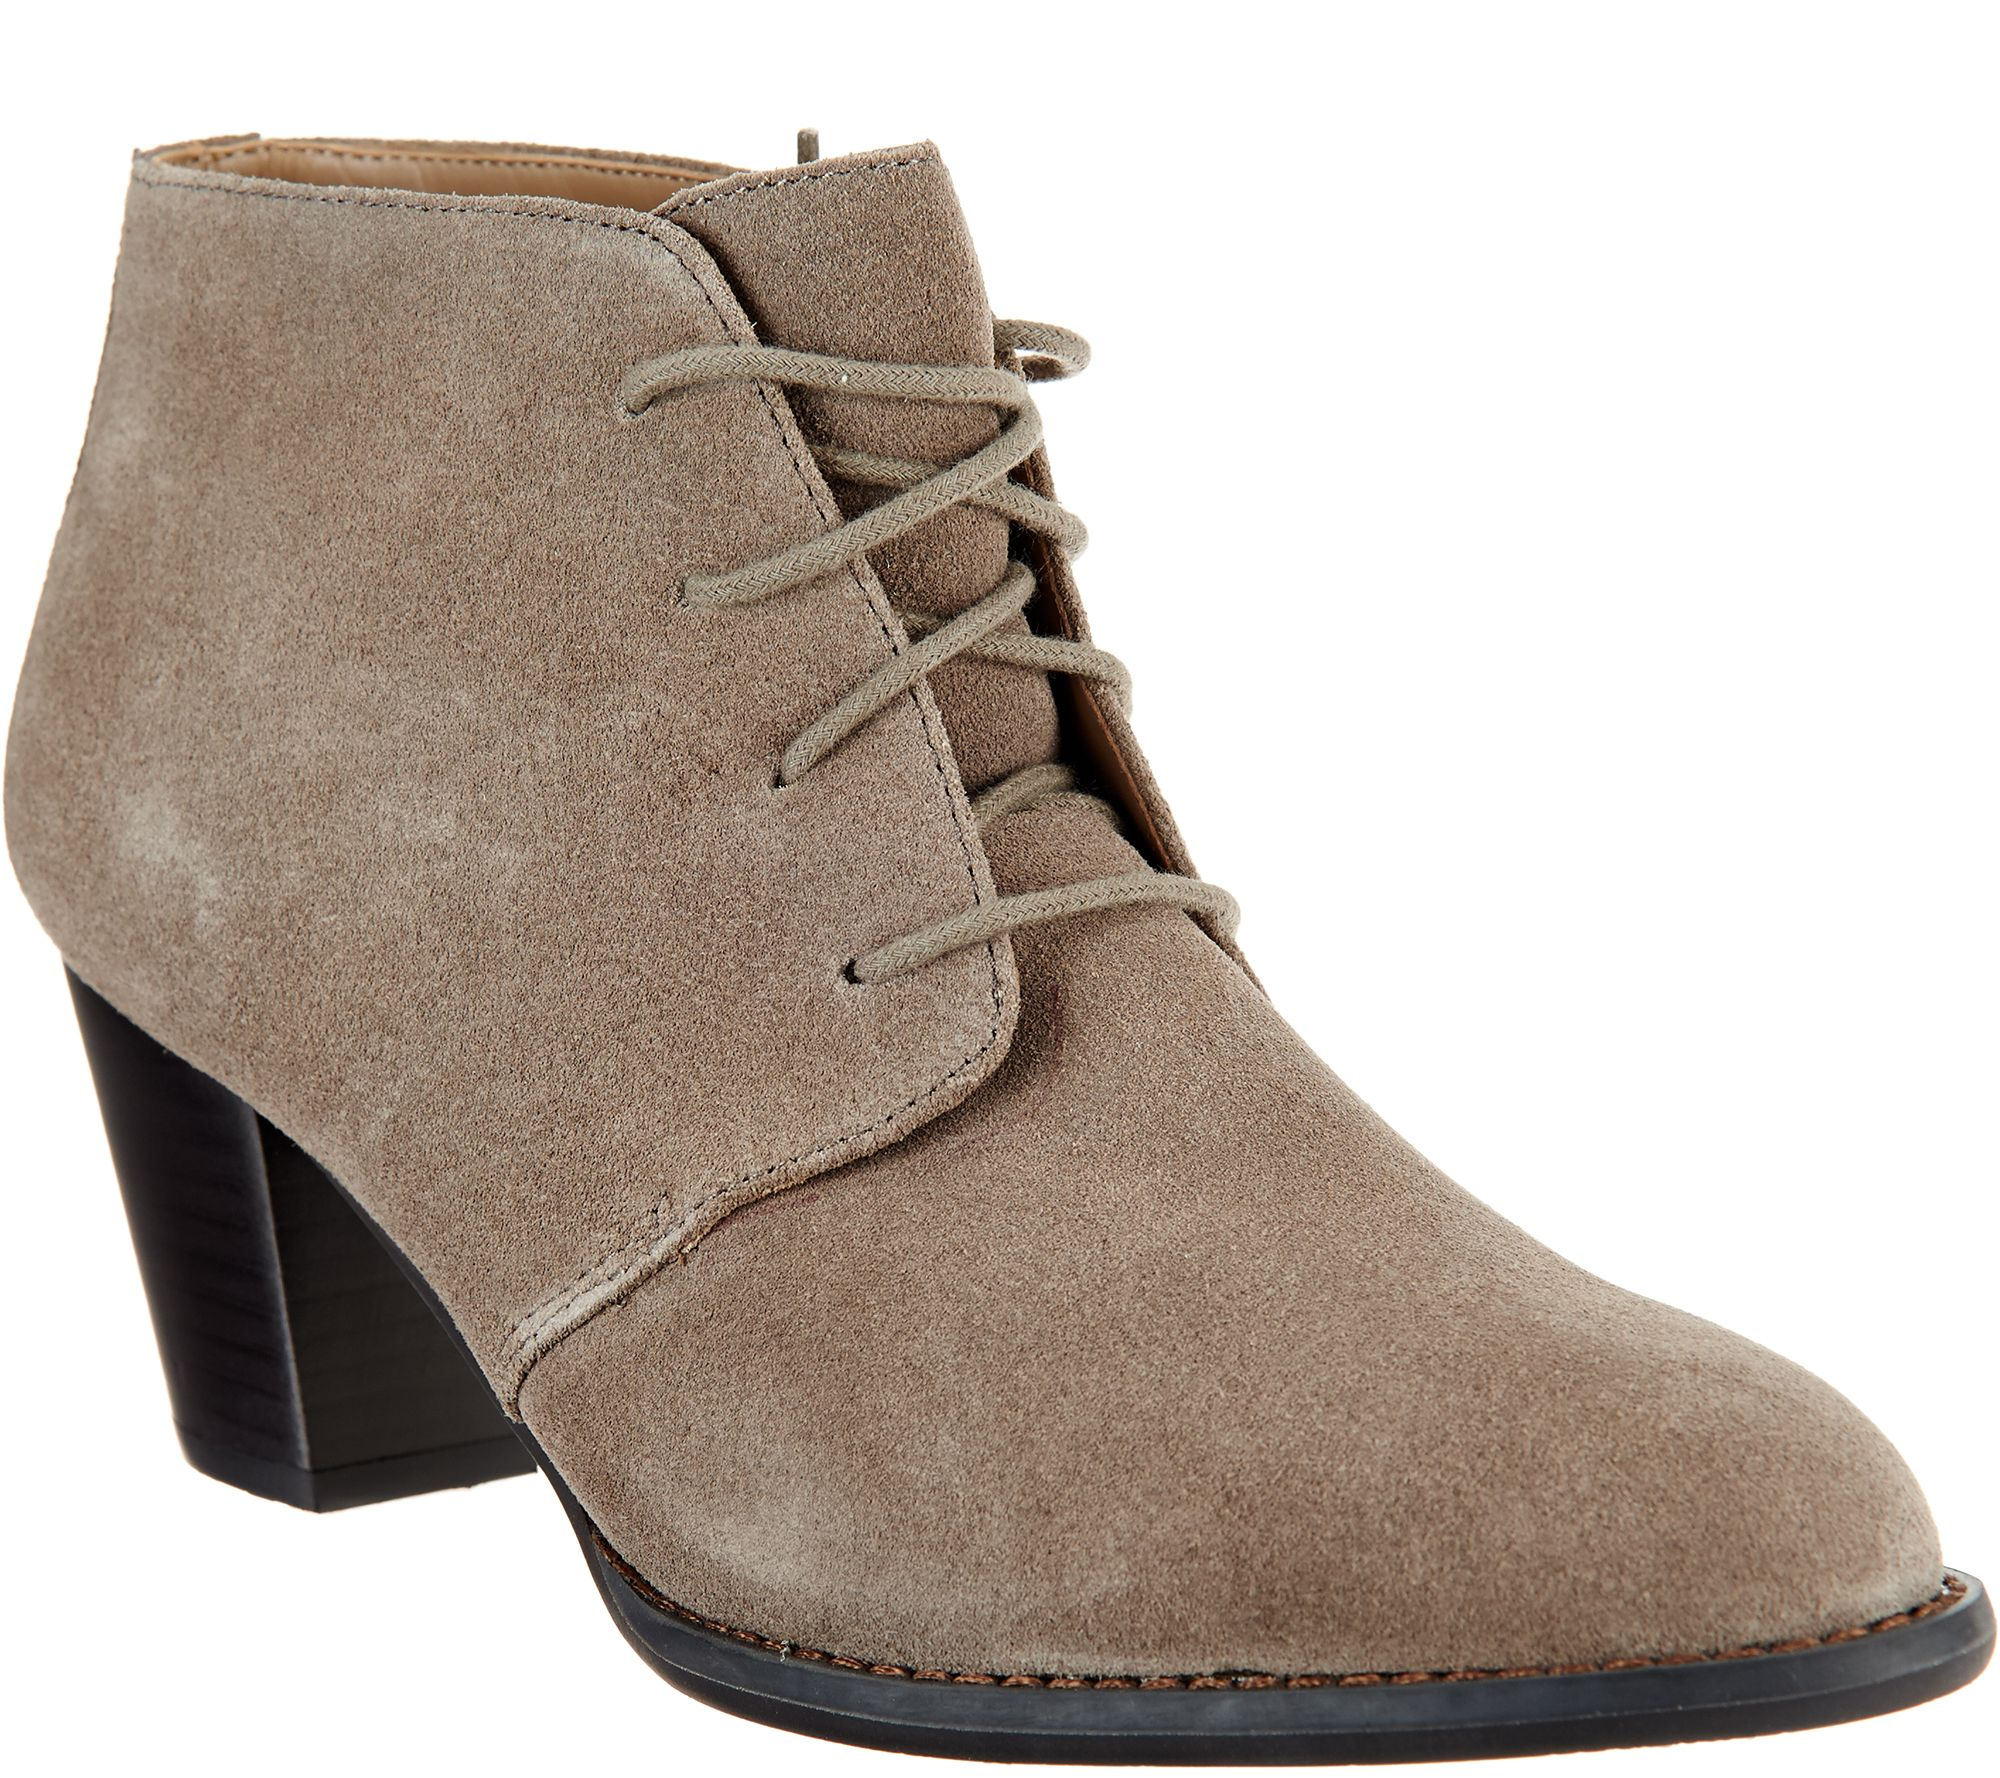 Vionic Suede Lace-up Boots - Zenda clearance cheap sLgNI